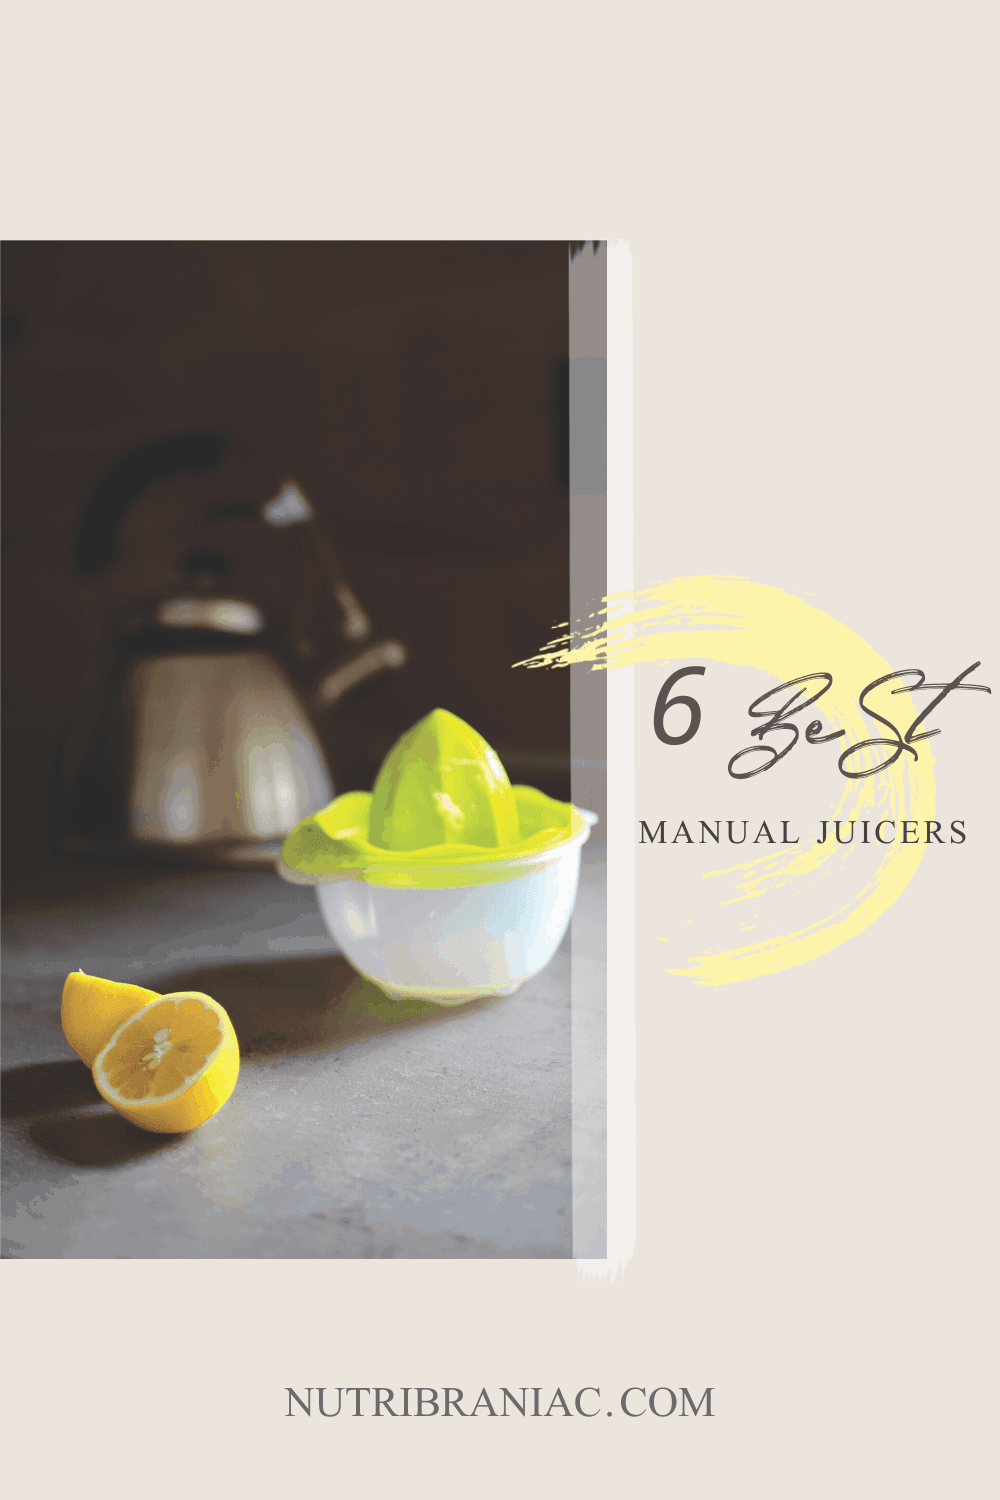 Having a good manual juicer in your kitchen arsenal is essential. A manual juicer is an affordable option compared to other advanced juicers. In our helpful buying, we share our favorite manual juicers on the market today. #manualjuicerproducts #manualjuicerstainlesssteel #manualjuicermachine #citrusjuicermanual #juicingrecipes #juicingforbeginners #juicingonabudget